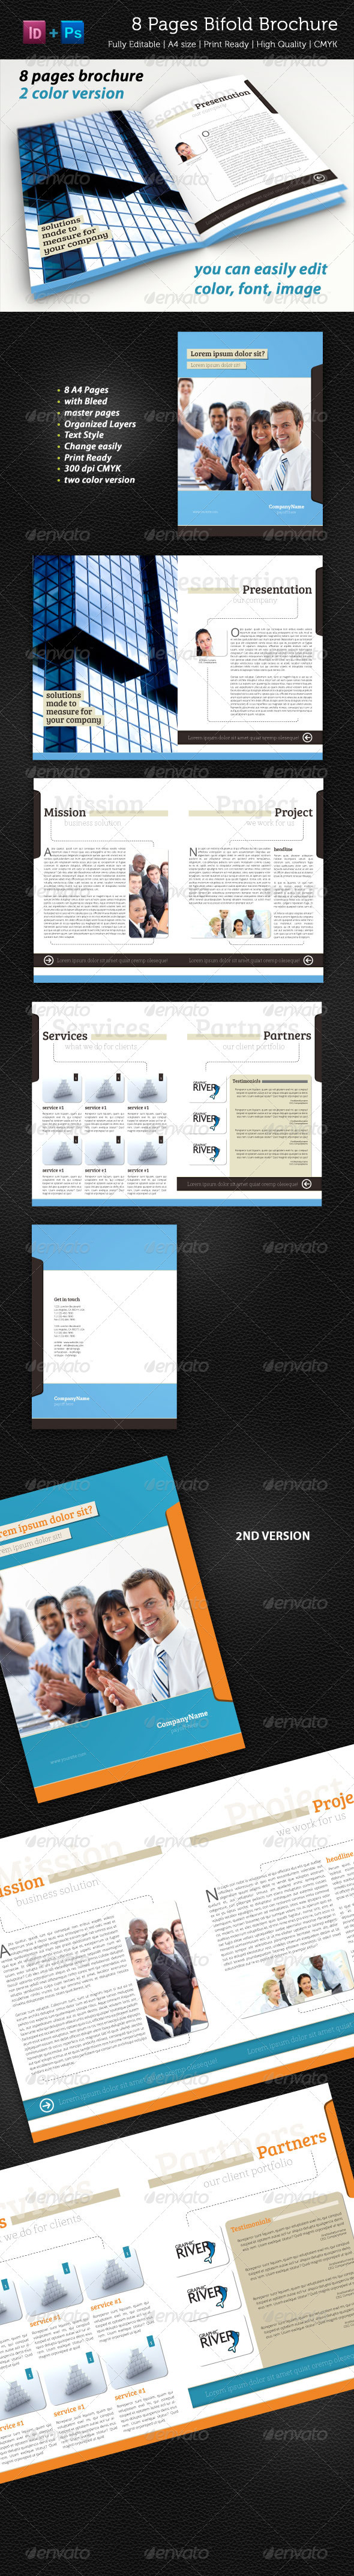 GraphicRiver 8 Pages Bifold Brochure 2300713